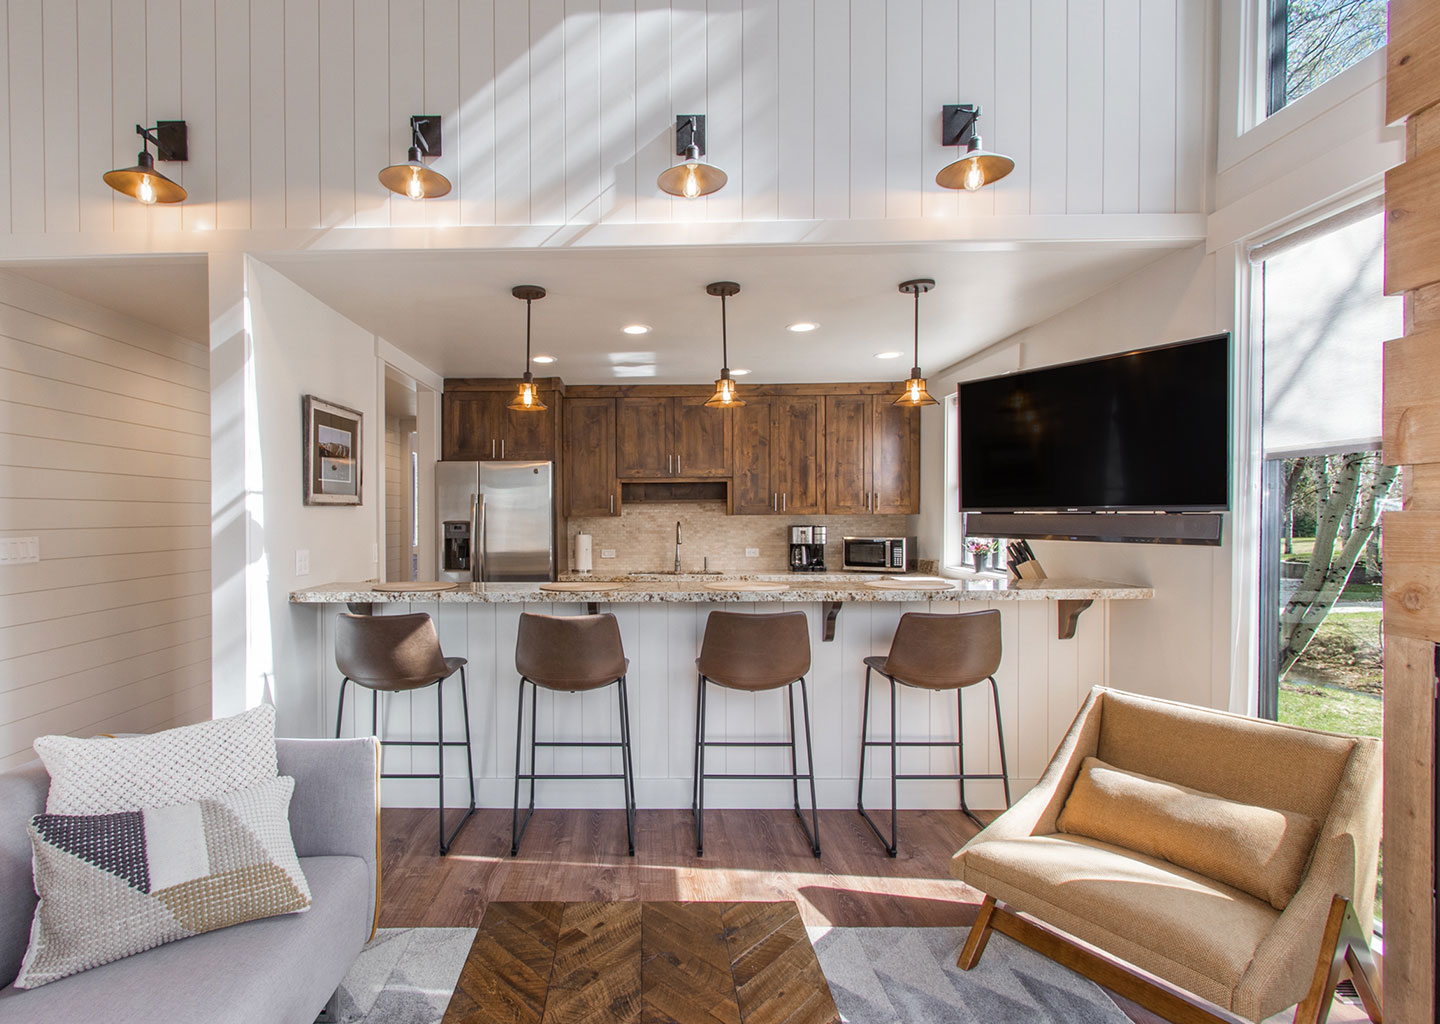 Nordic Inspired Living and Kitchen at Three Kings Condominiums in Downtown Park City, Utah